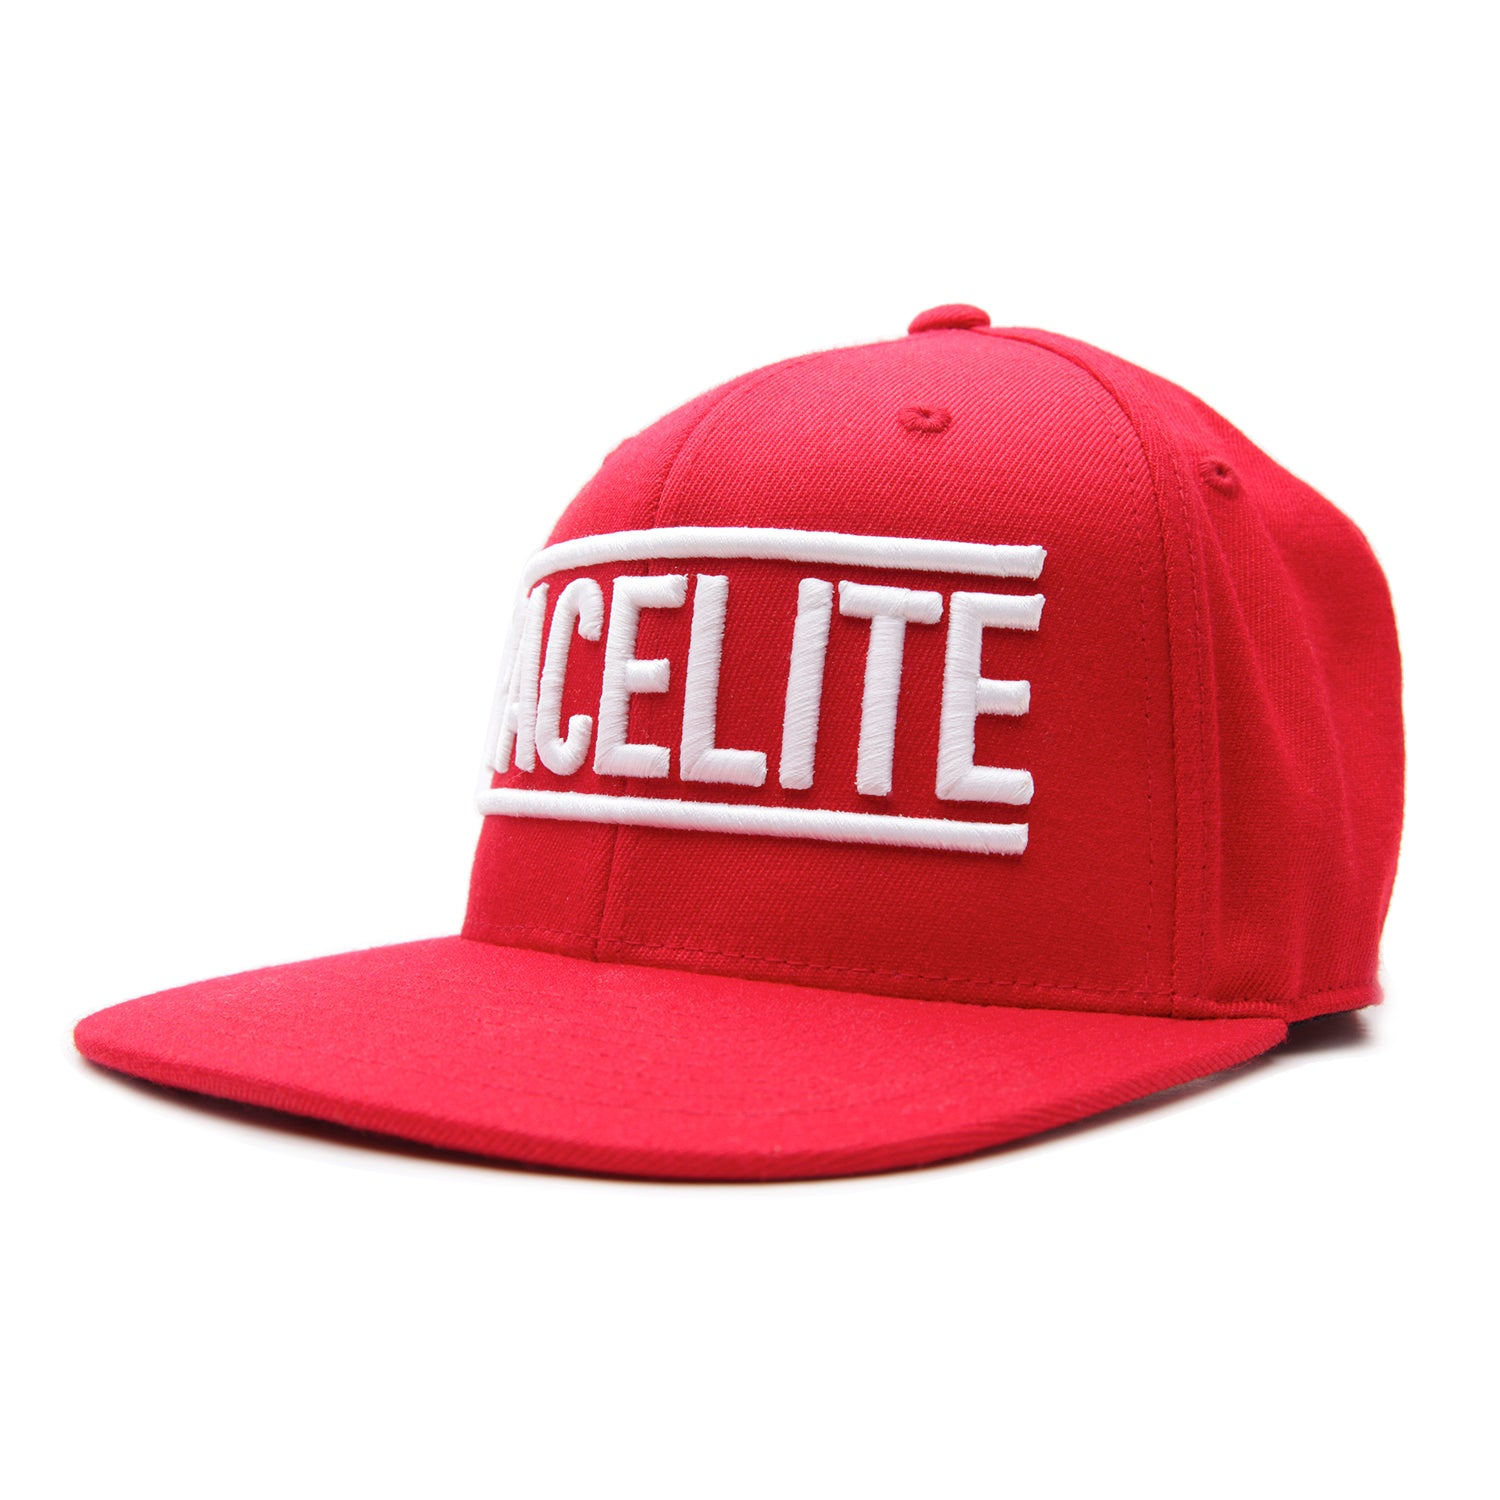 Racelite Designs Flat Brim Red Emblem Flex Snap-Back Hat Product View 1